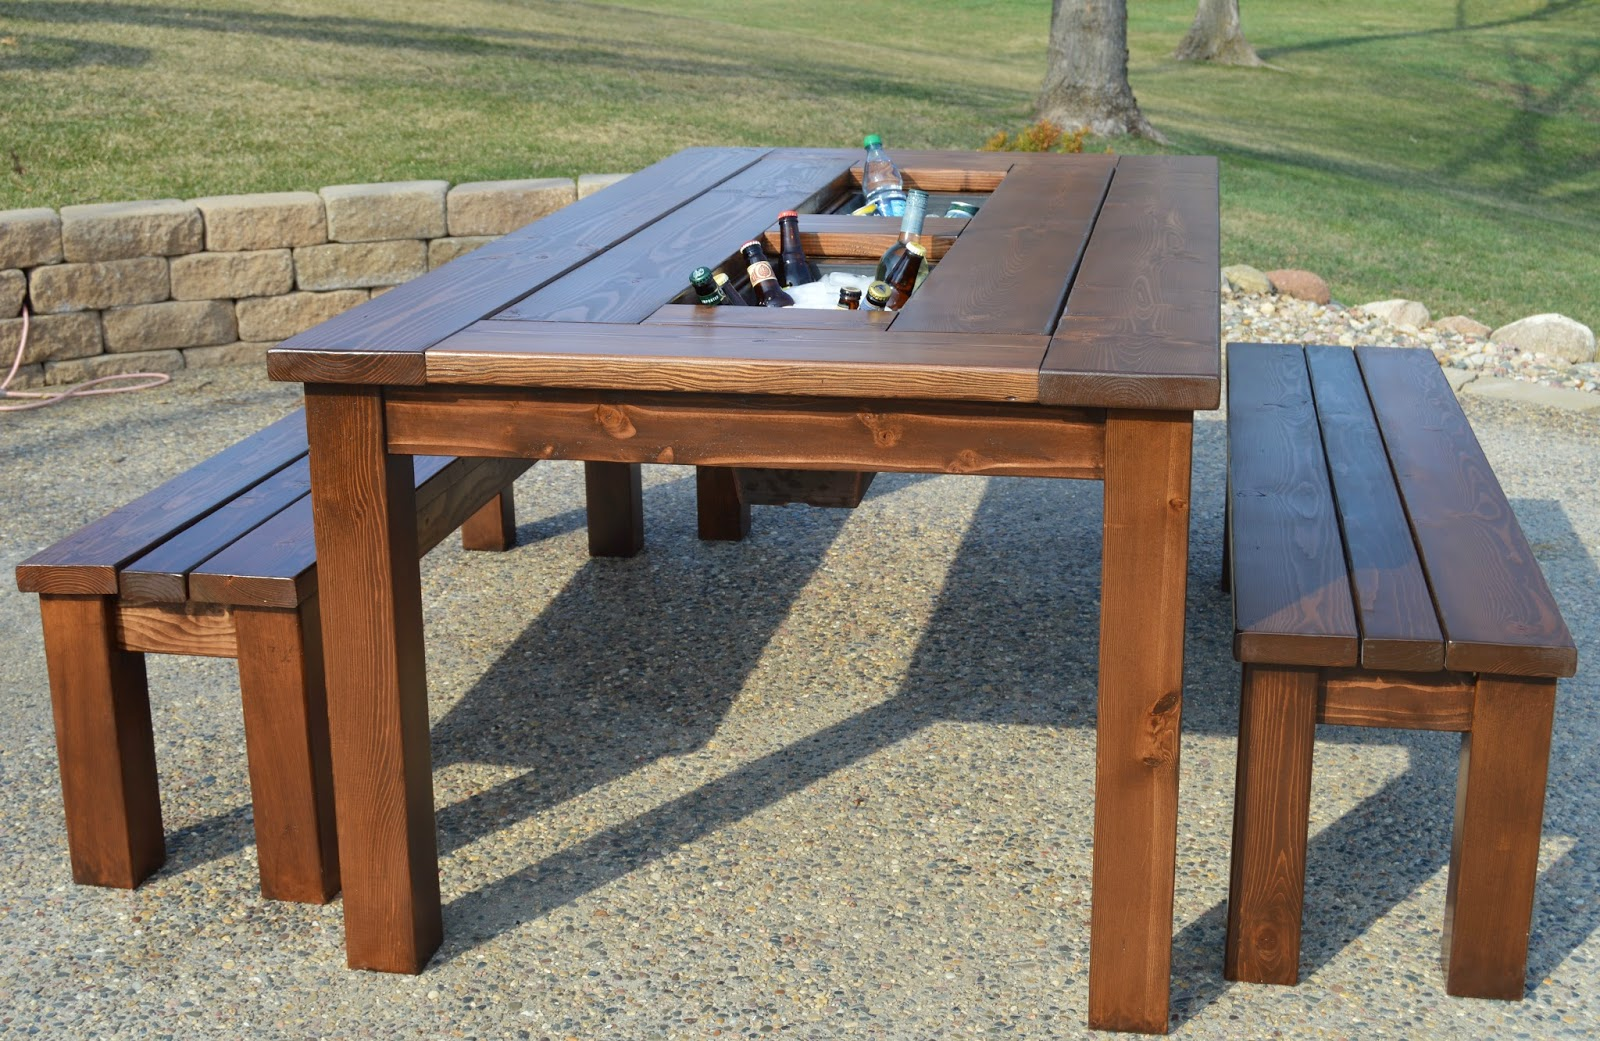 Diy Outdoor Table With Cooler. KRUSE\u0027S WORKSHOP Diy Outdoor Table With  Cooler